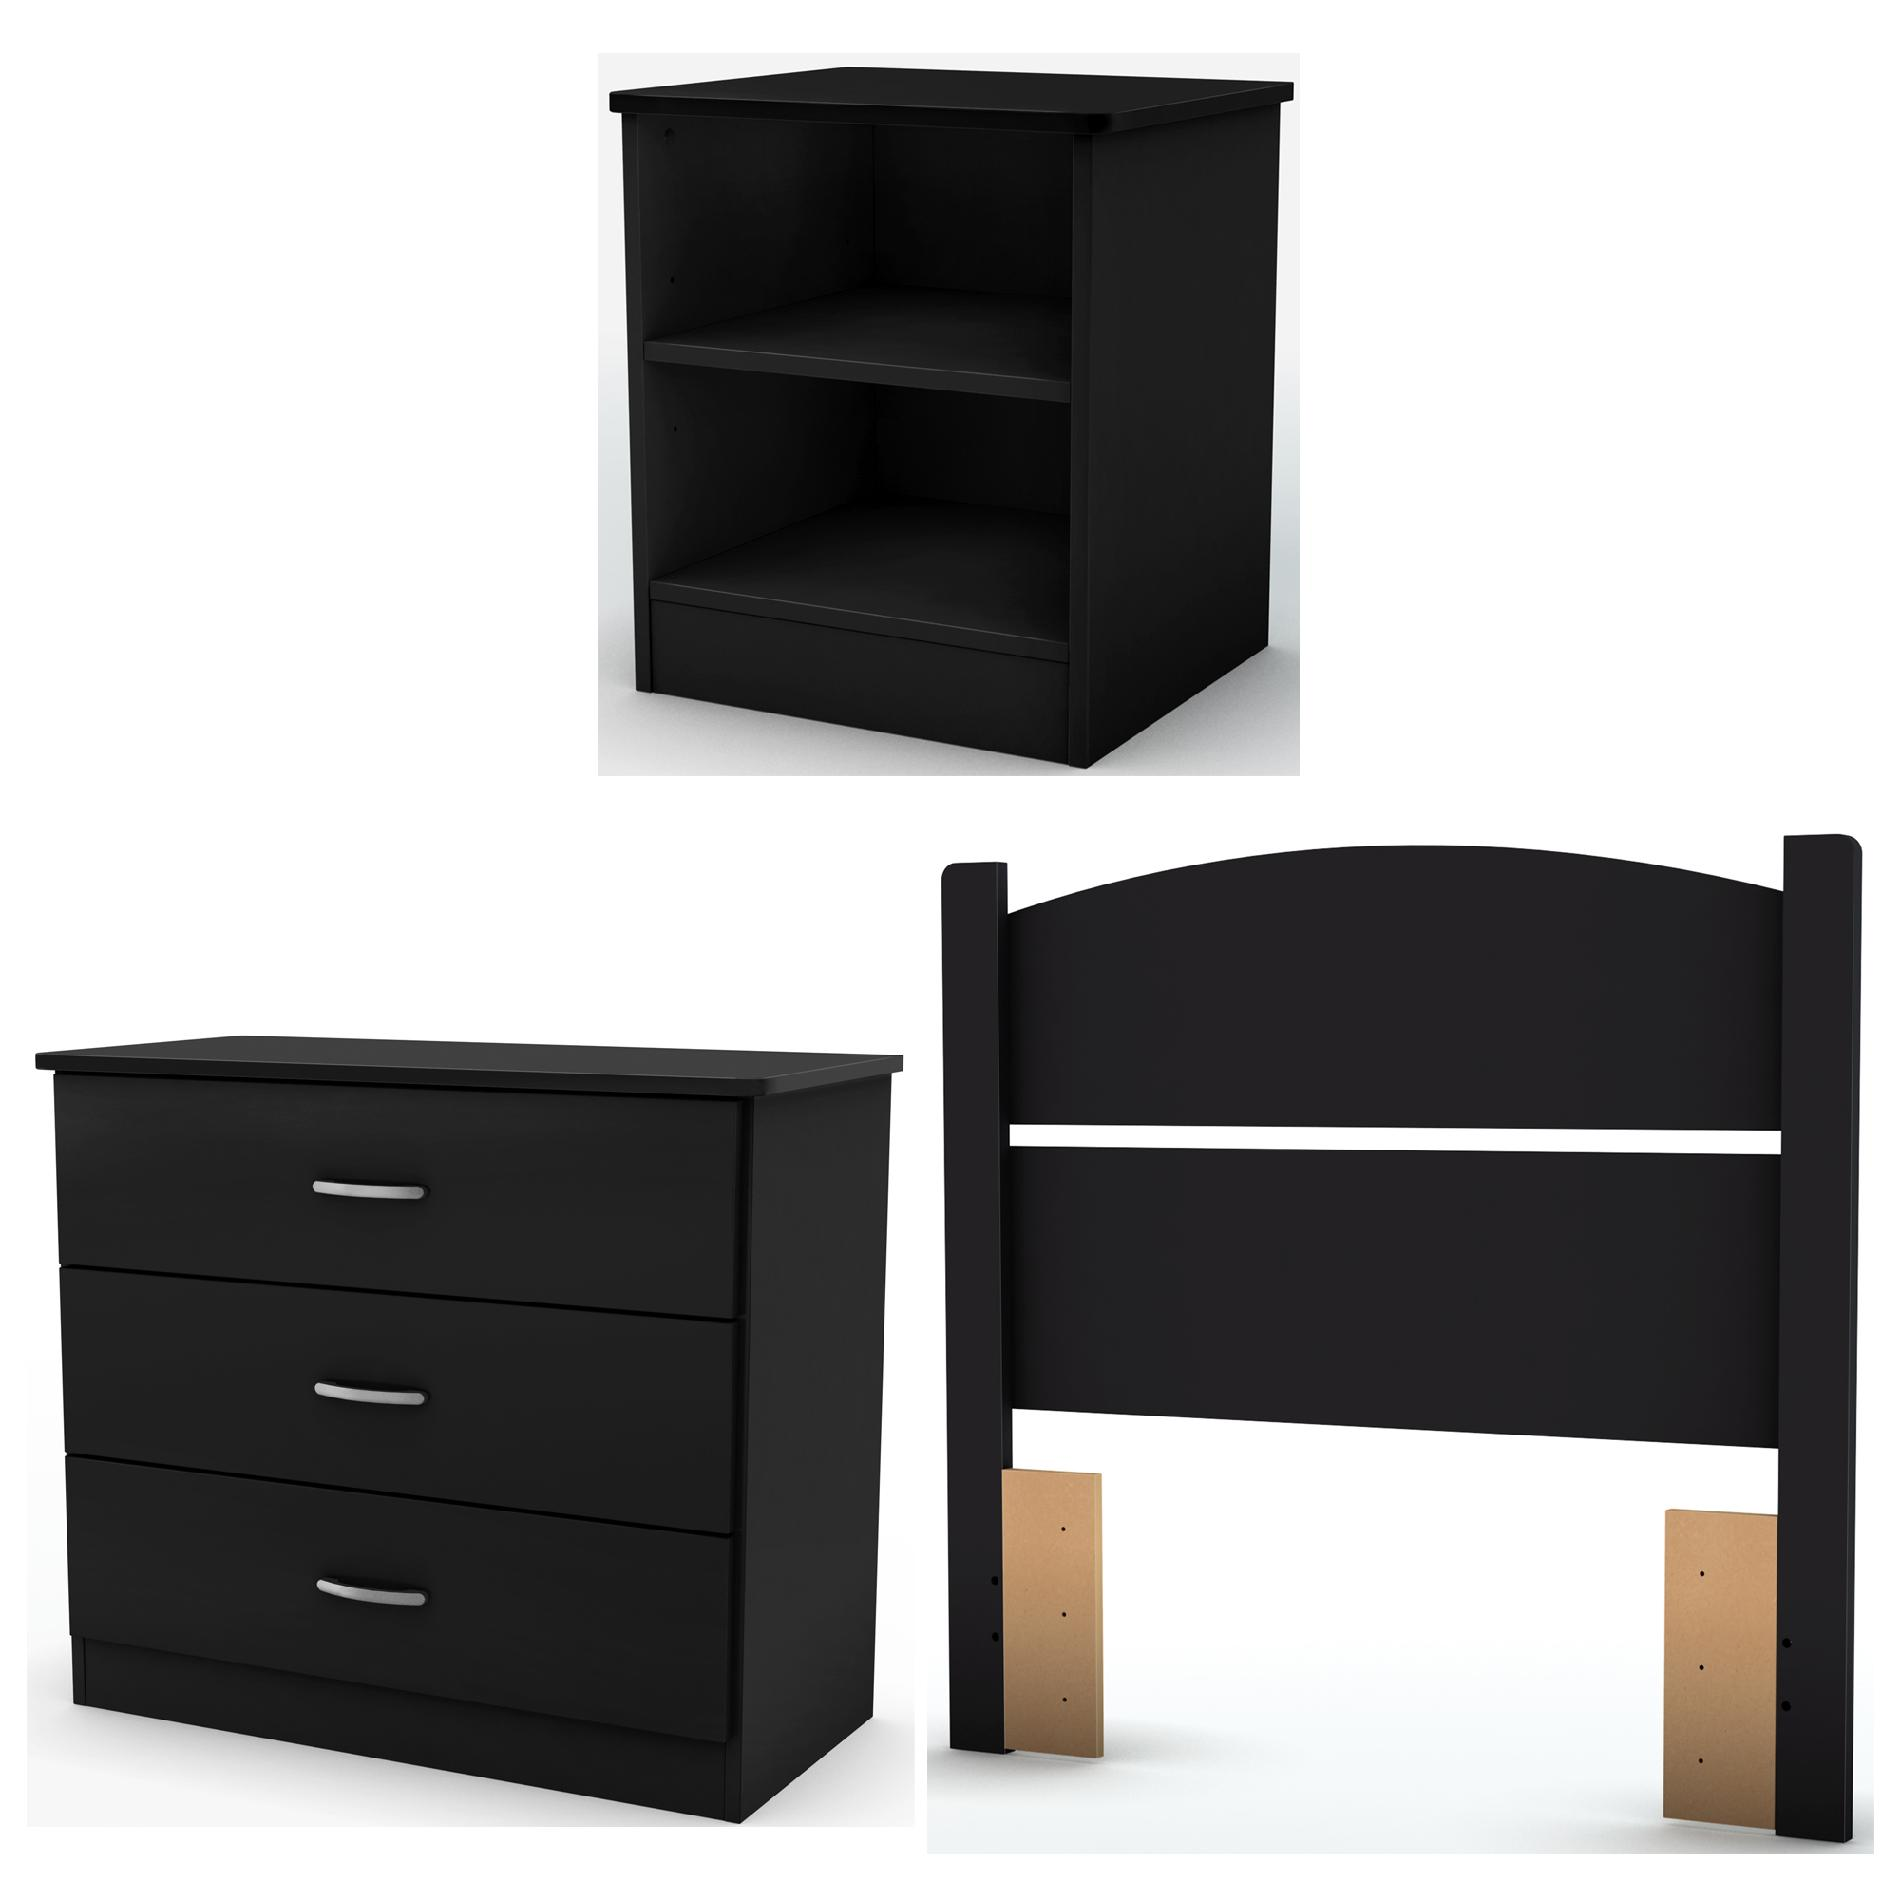 Bedroom Furniture Sets 2013 twin bed specials |